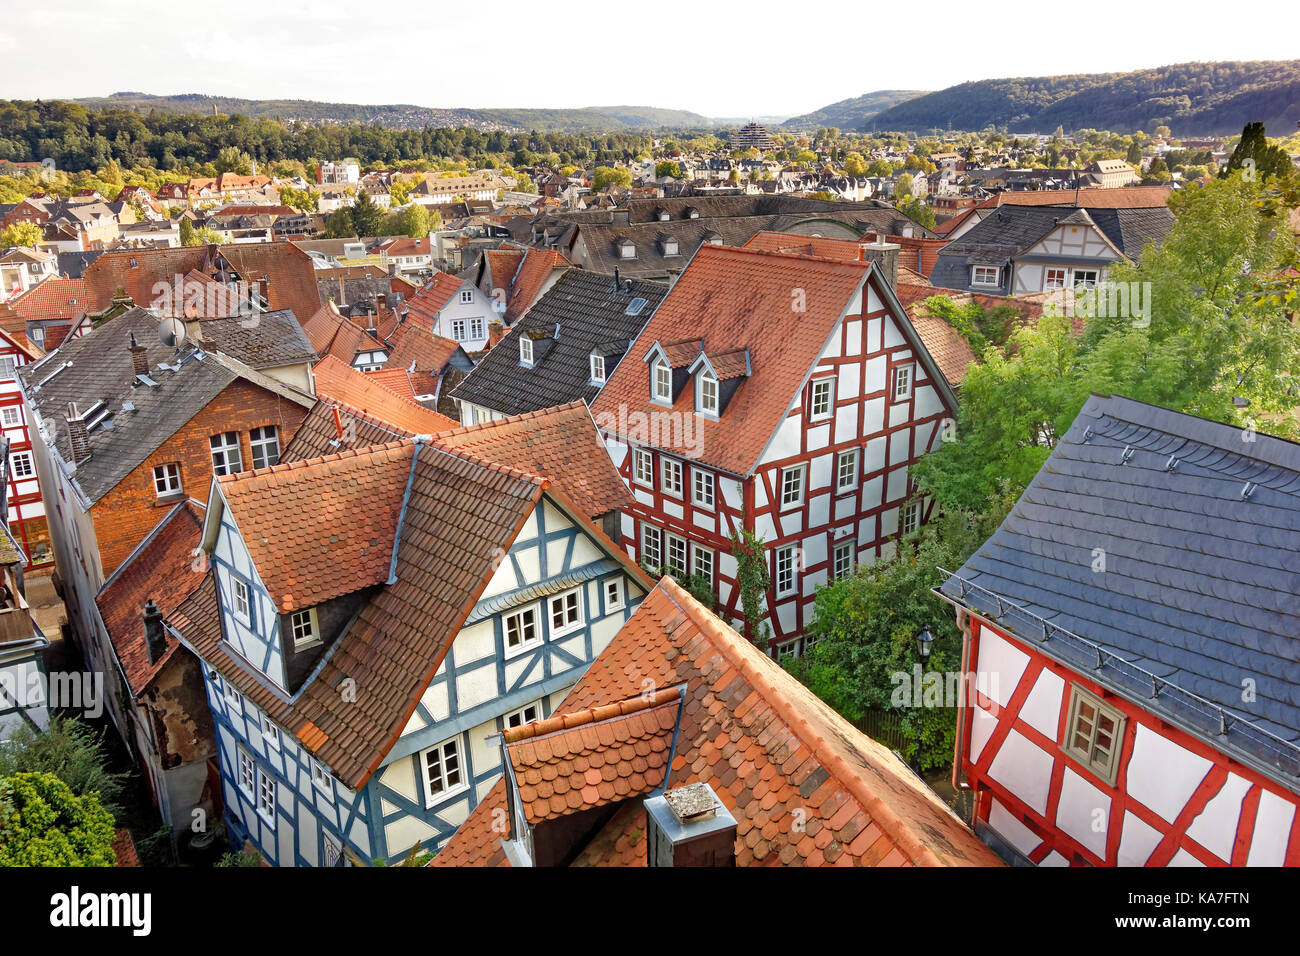 View over red roofs, half-timbered houses in the old town, Marburg an der Lahn, Hesse, Germany - Stock Image